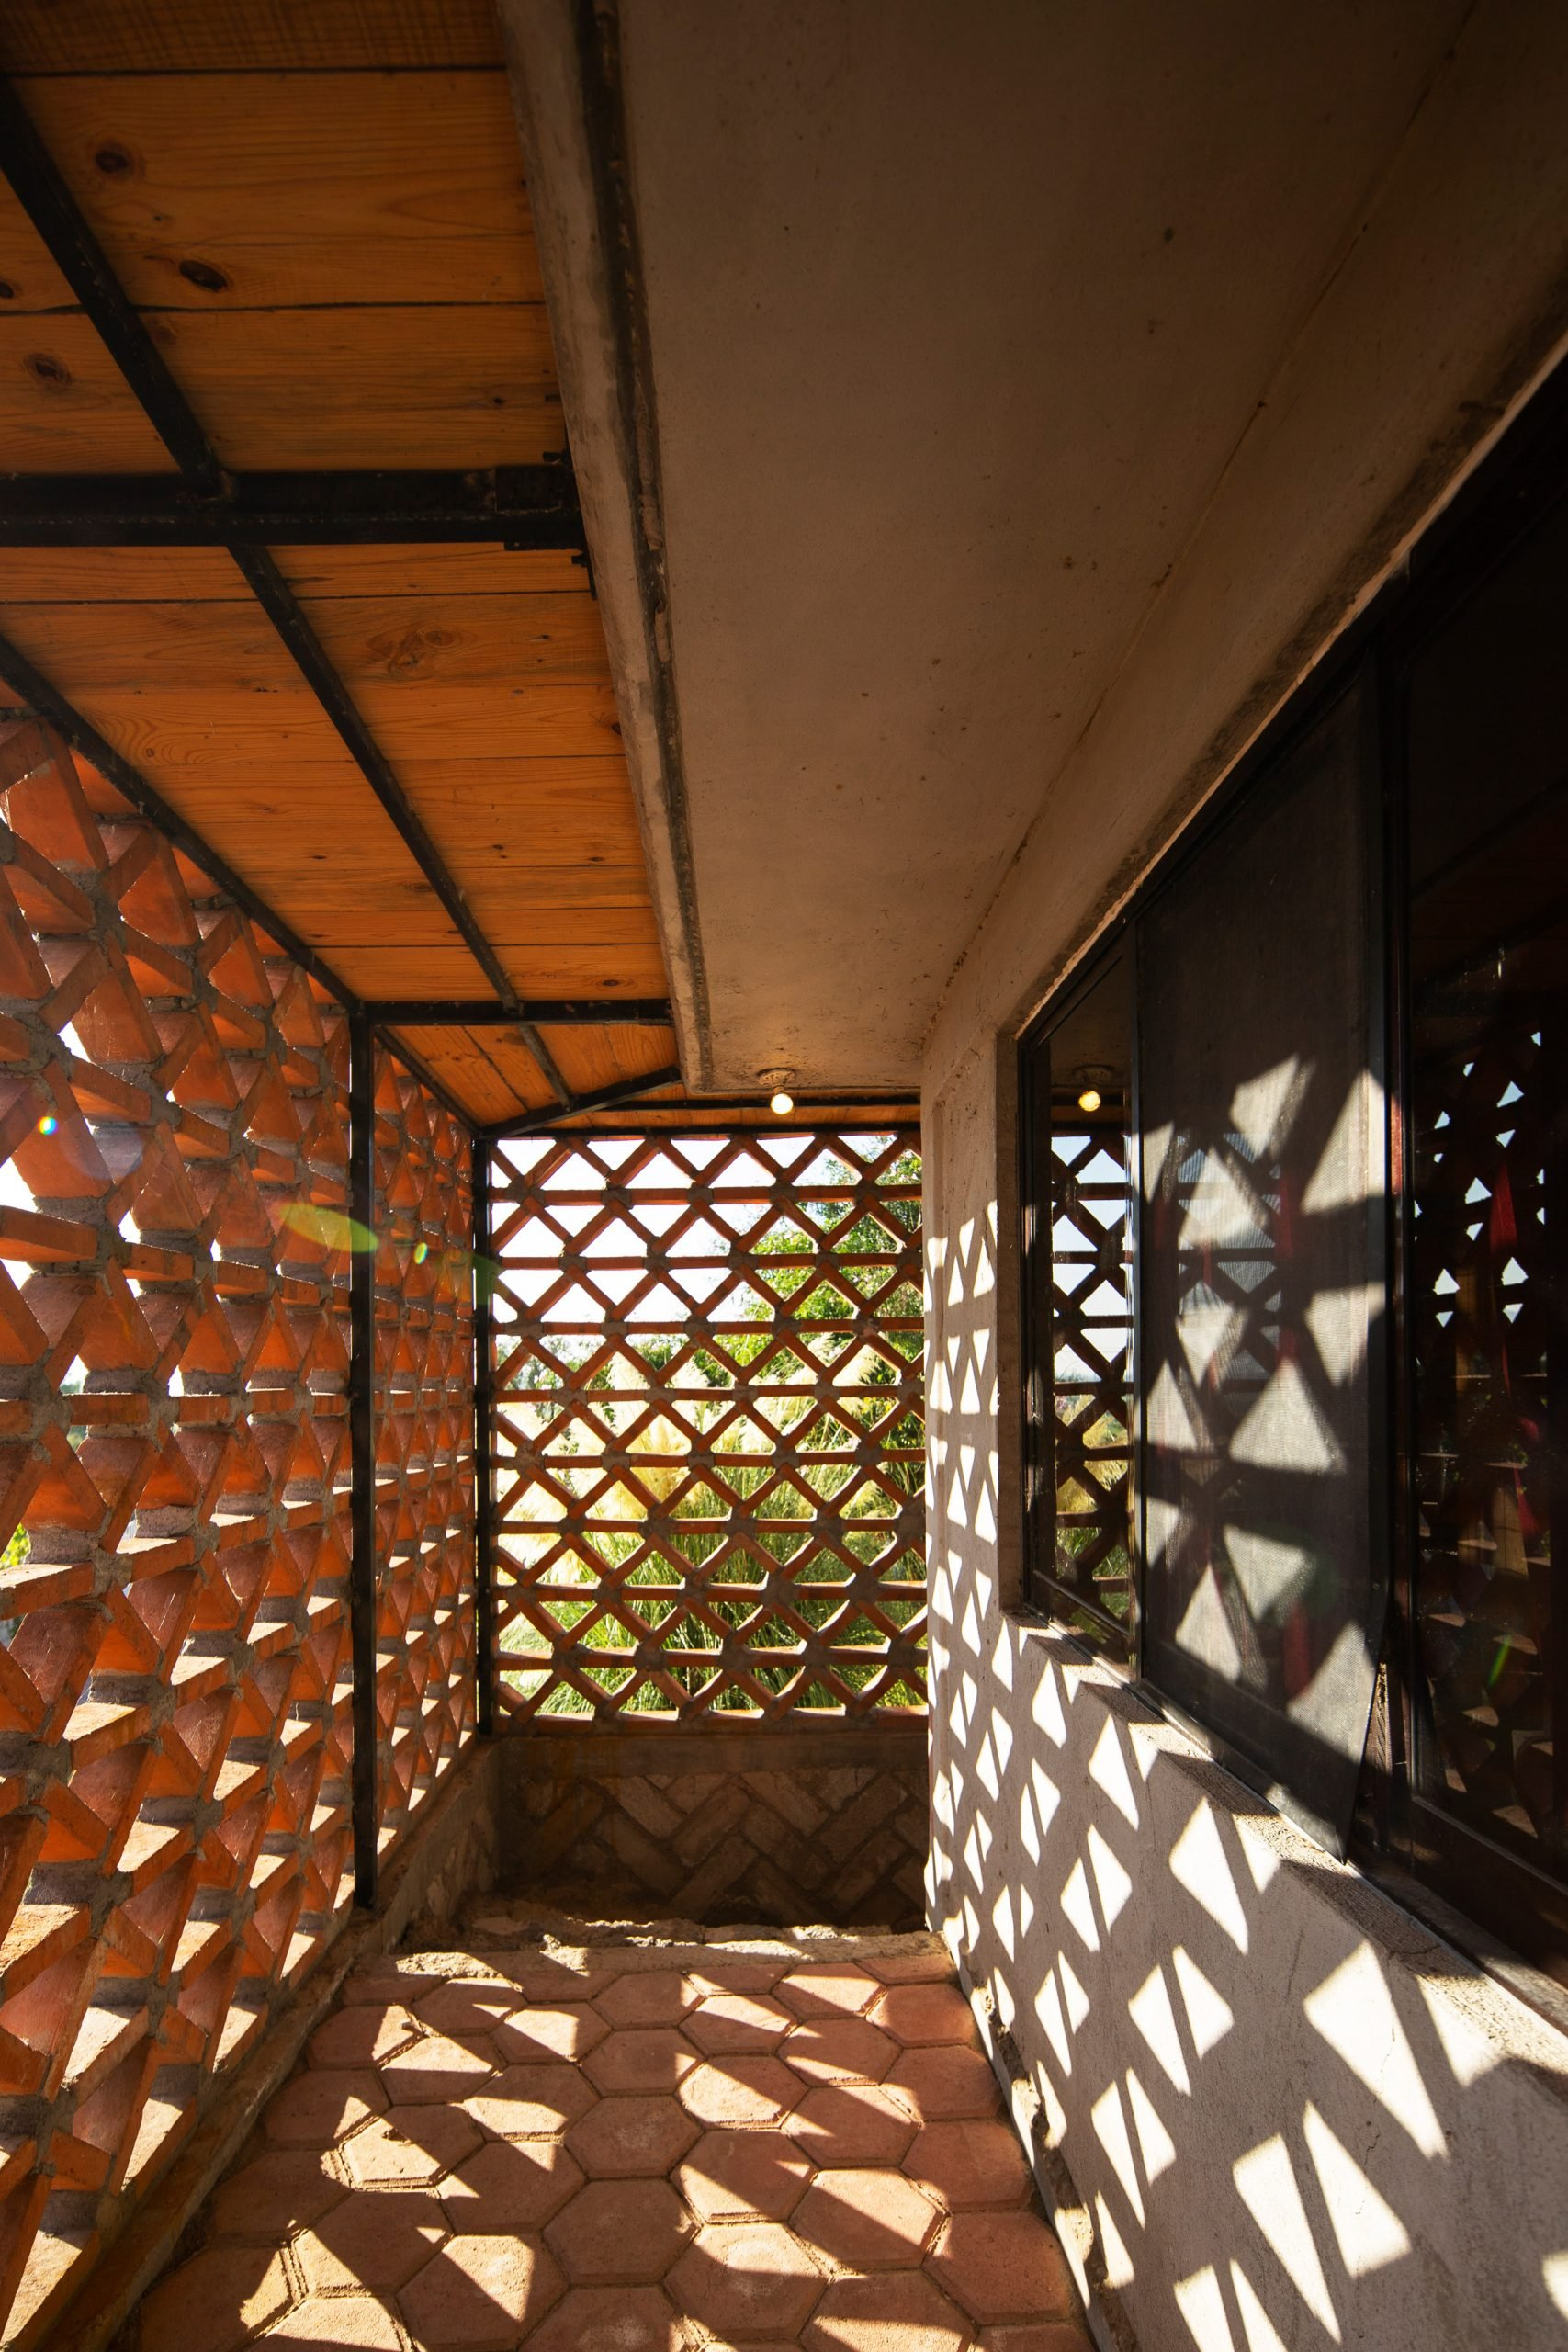 Brickwork lattice of Hñähñu Multimedia Center by Aldana Sanchez Architects